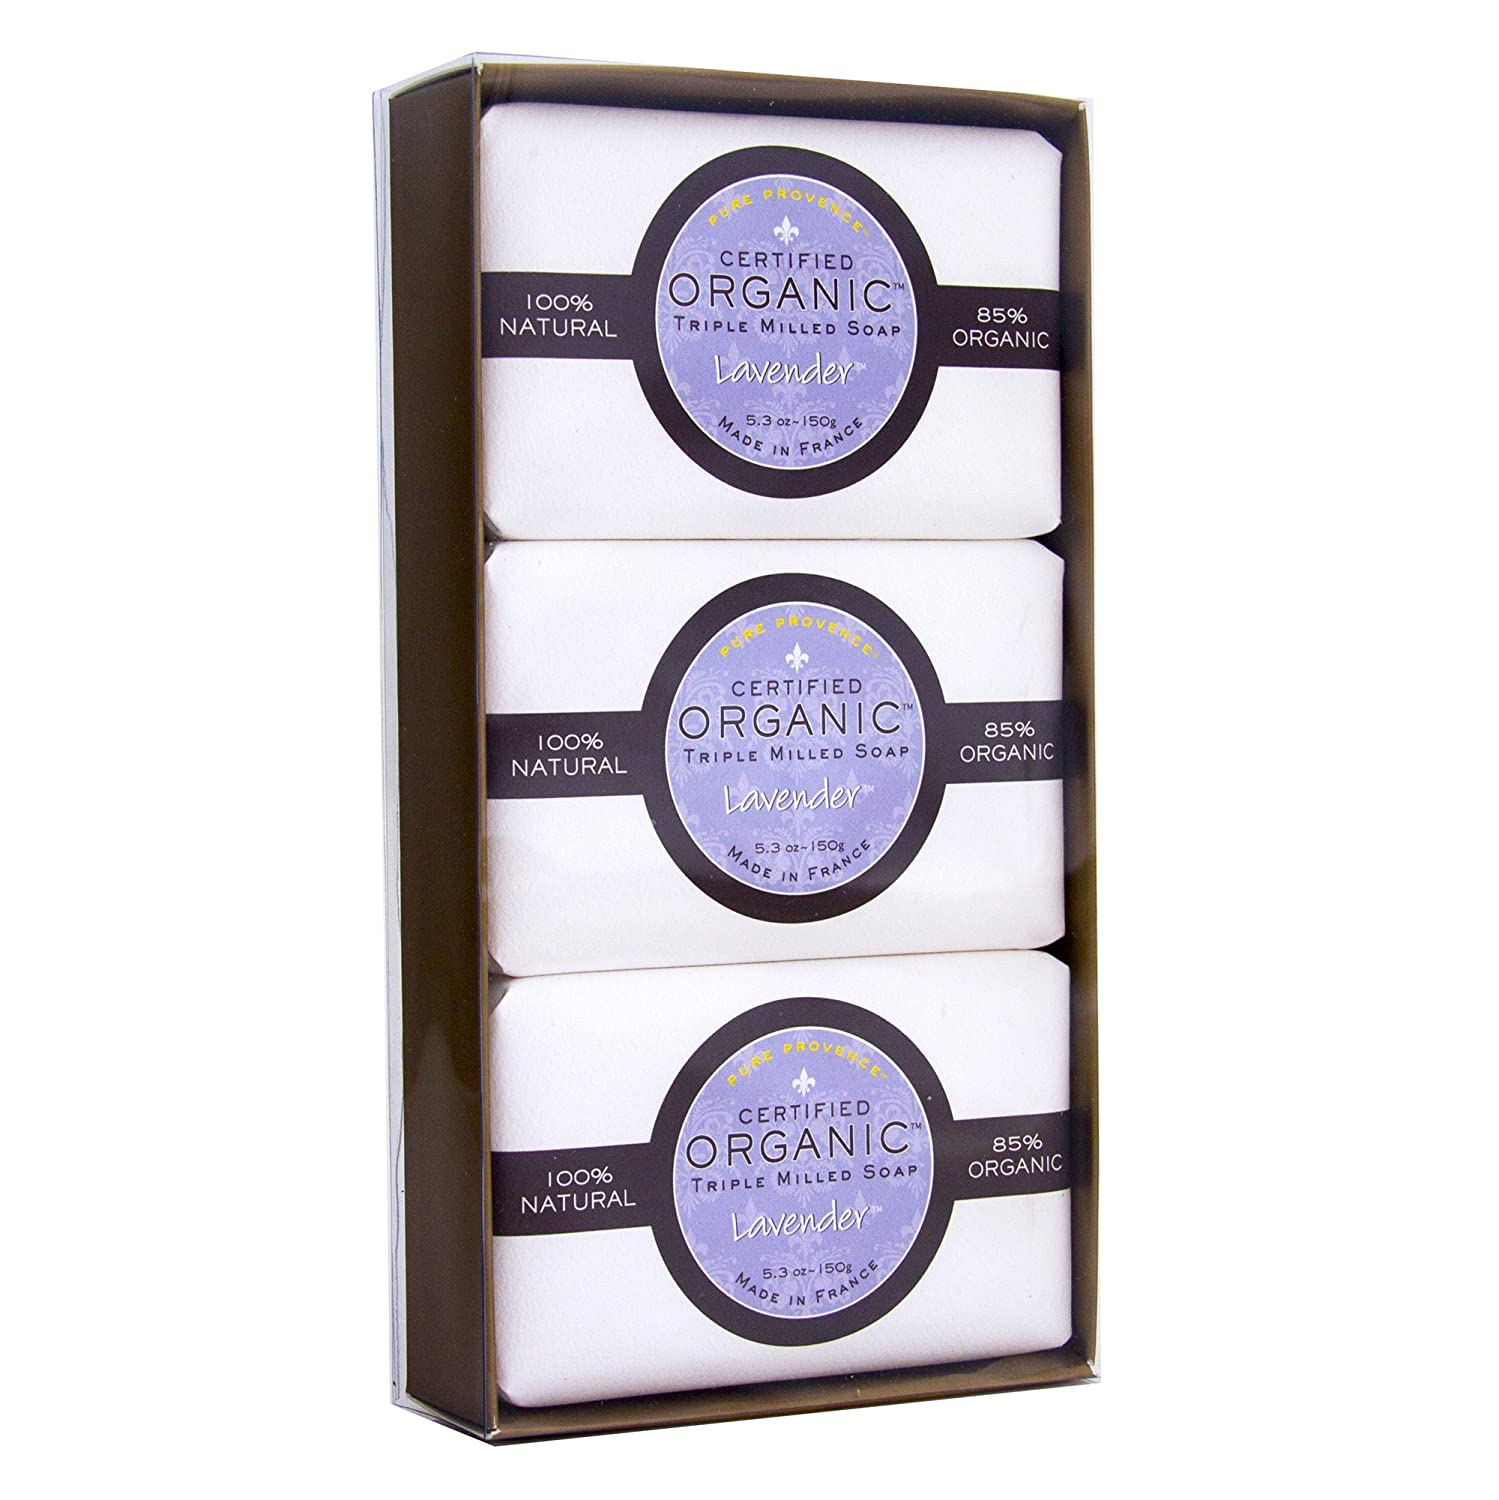 Pure Provence Natural and Organic Triple Milled French Lavender Soap, Organic Shea Butter, Luxury Full-Size Bars, 100% Vegetable Based, Relaxing, Gift Box, Paraben Free 3x5.3 oz (150g) Pack Ton Savon